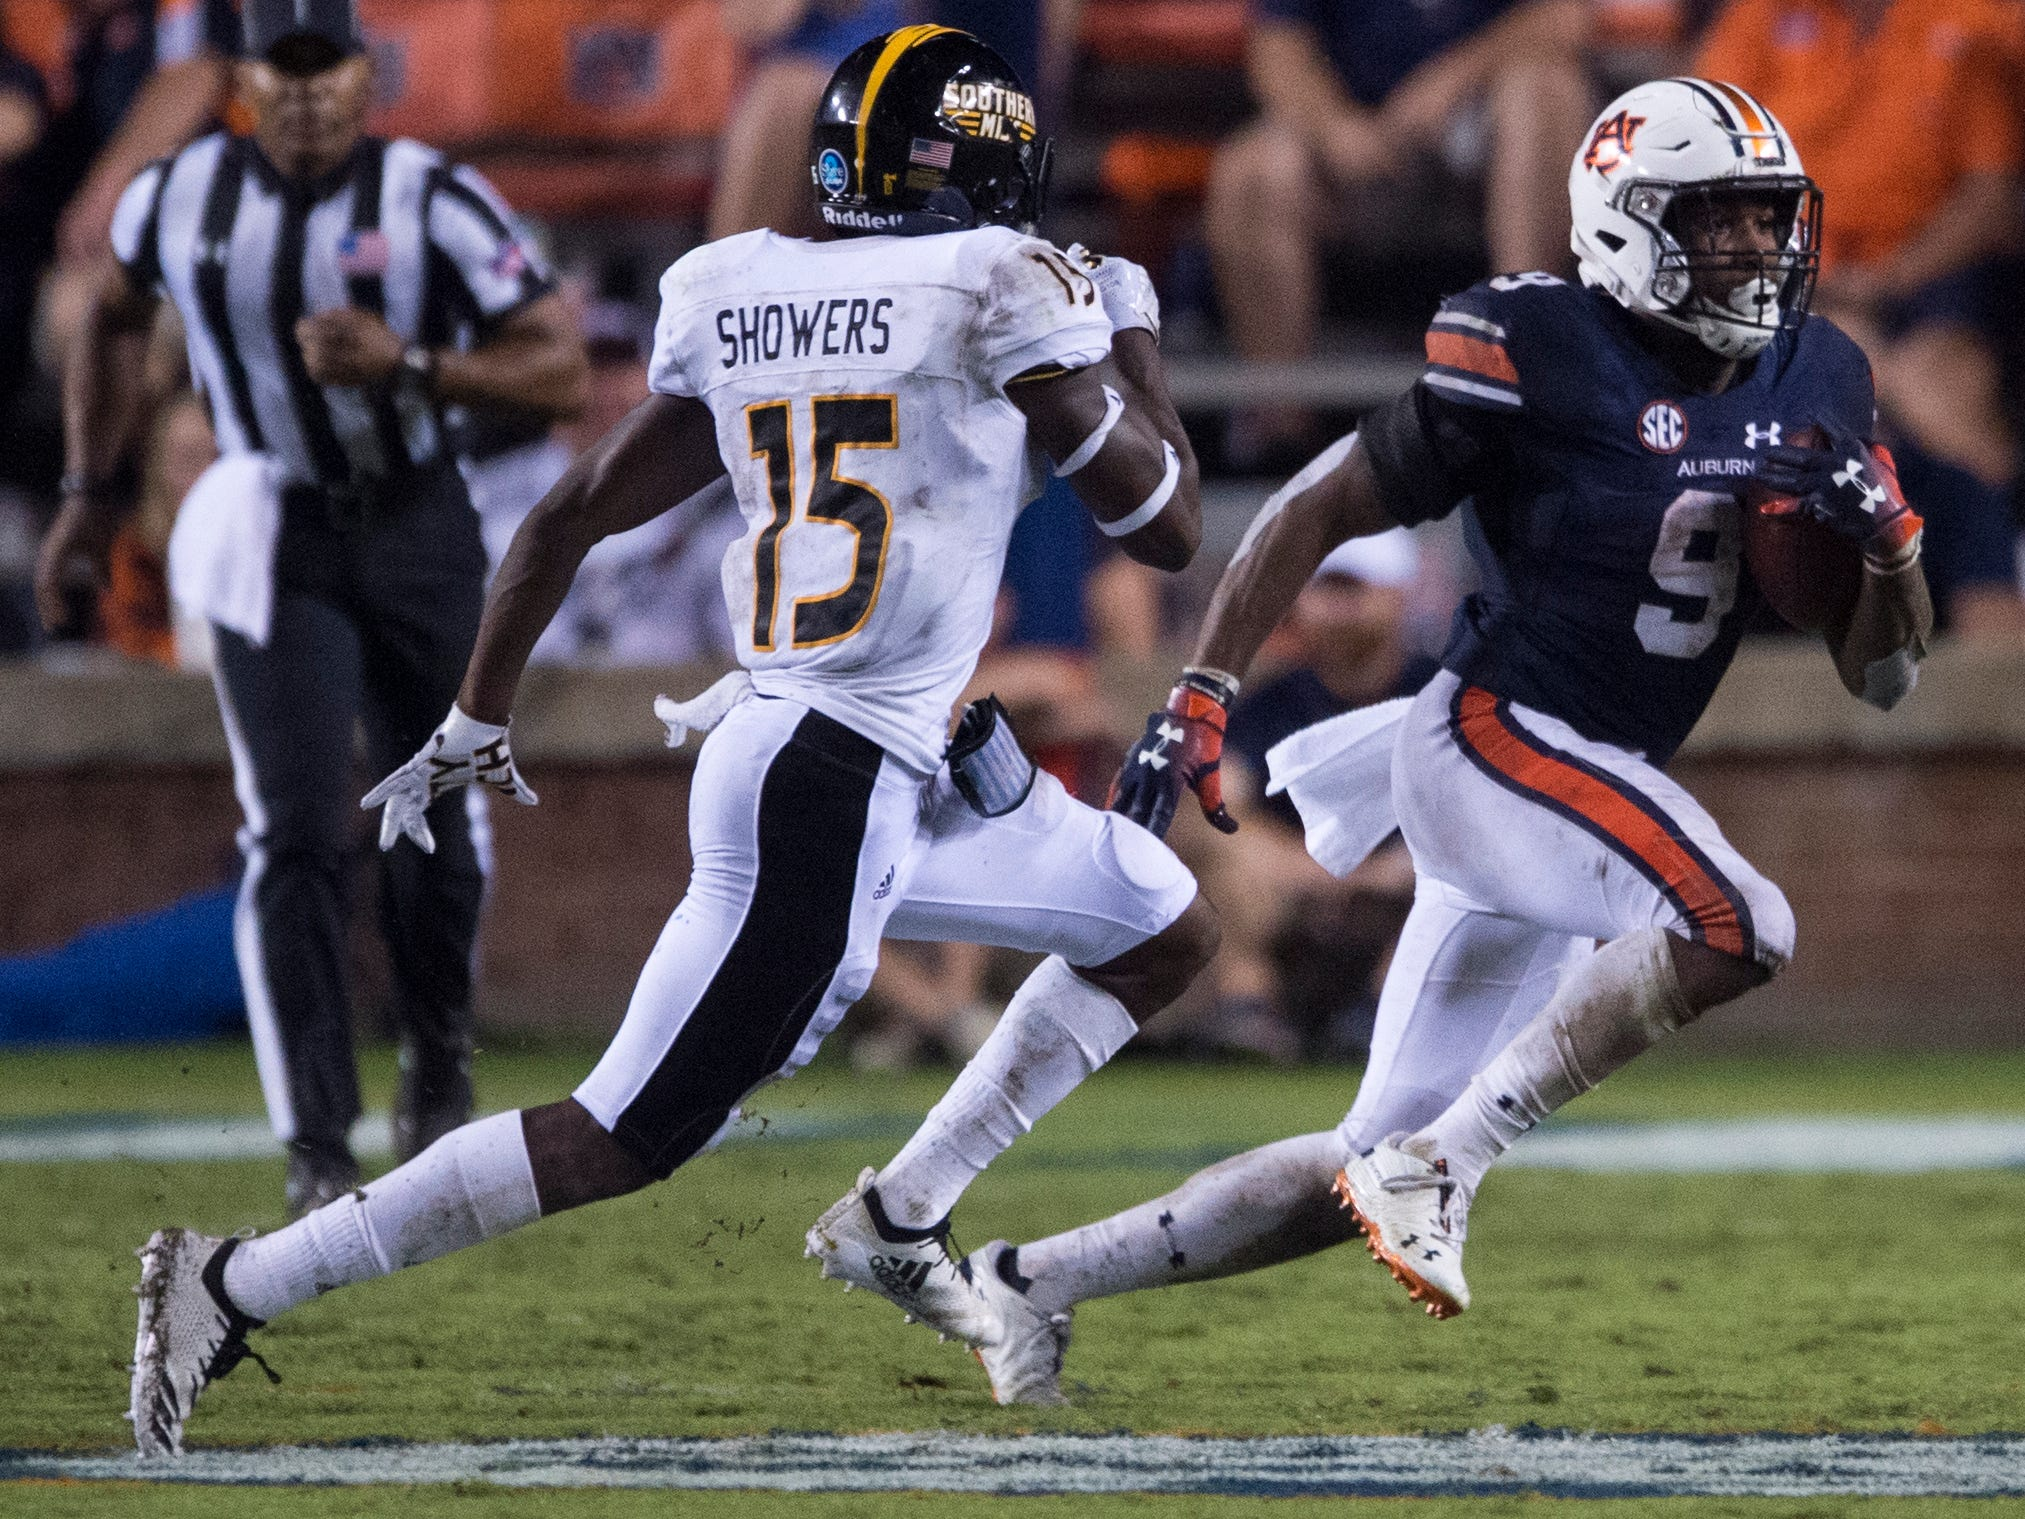 Auburn's Kam Martin (9) runs the ball chased by Southern Miss' Shannon Showers (15) at Jordan-Hare Stadium in Auburn, Ala., on Saturday, Sept. 29, 2018. Auburn defeated  Southern Miss 24-13.